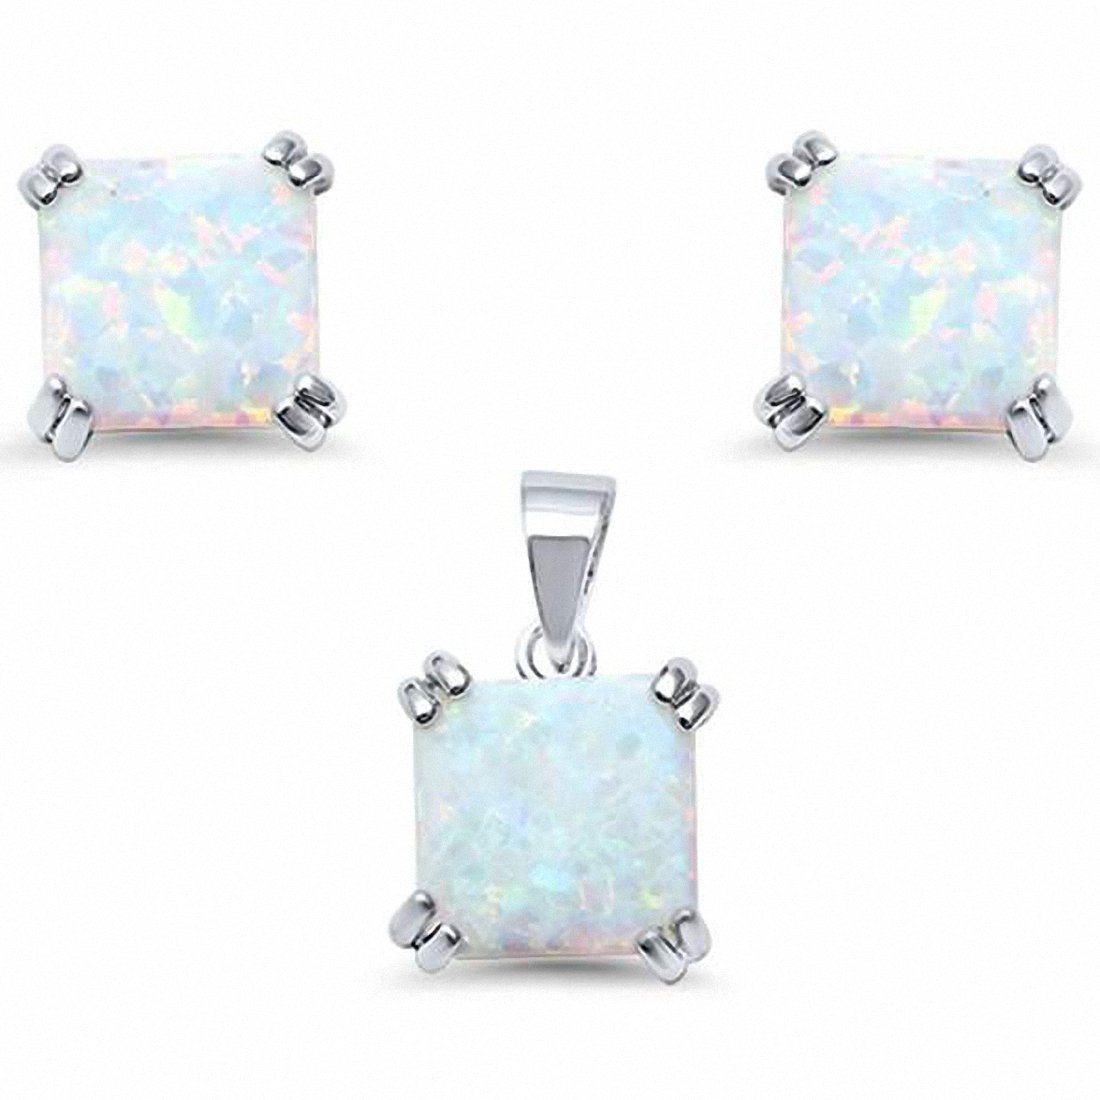 Double Prong Jewelry Set Square Cushion Created Opal 925 Sterling Silver Choose Color